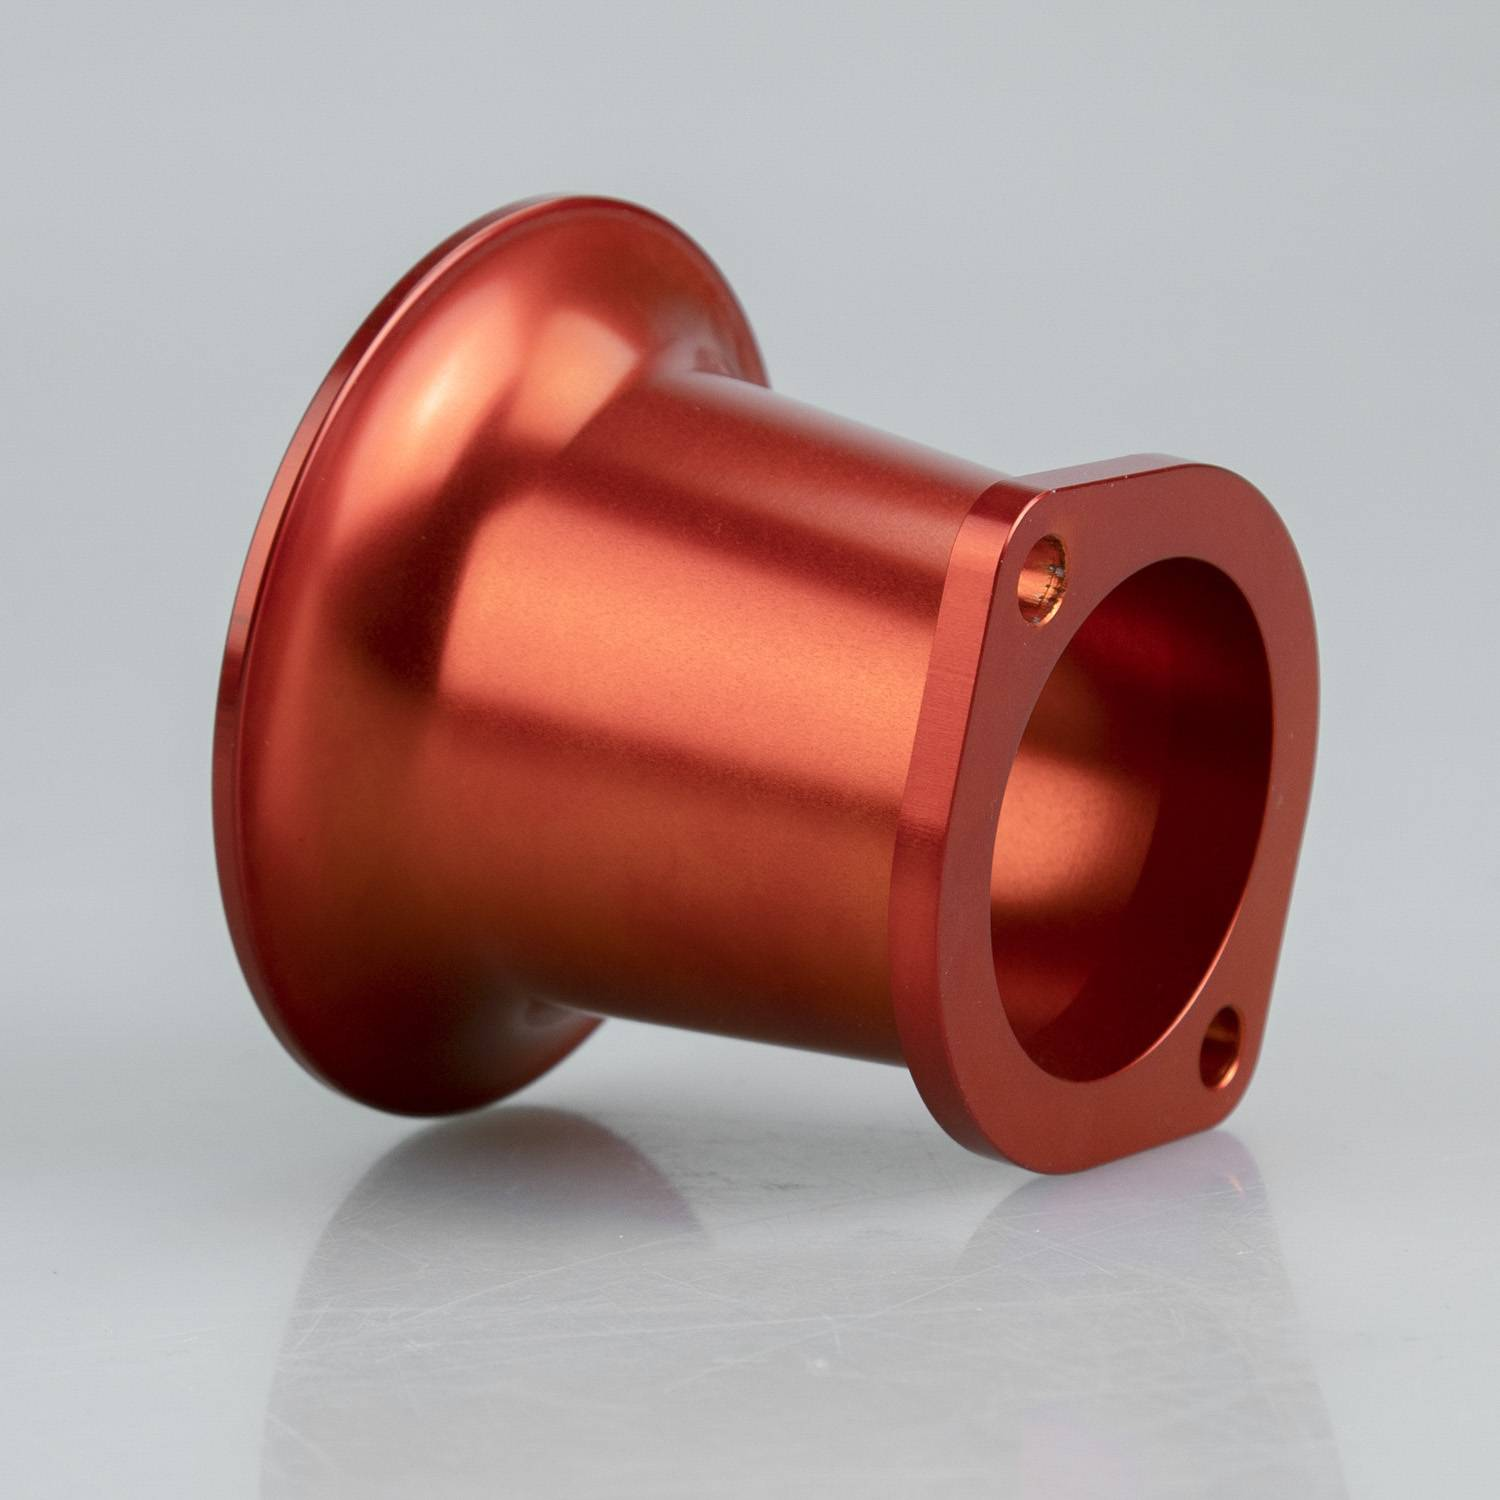 CNC Machining Parts With Custom Anodized Colorful Surface Featured Image